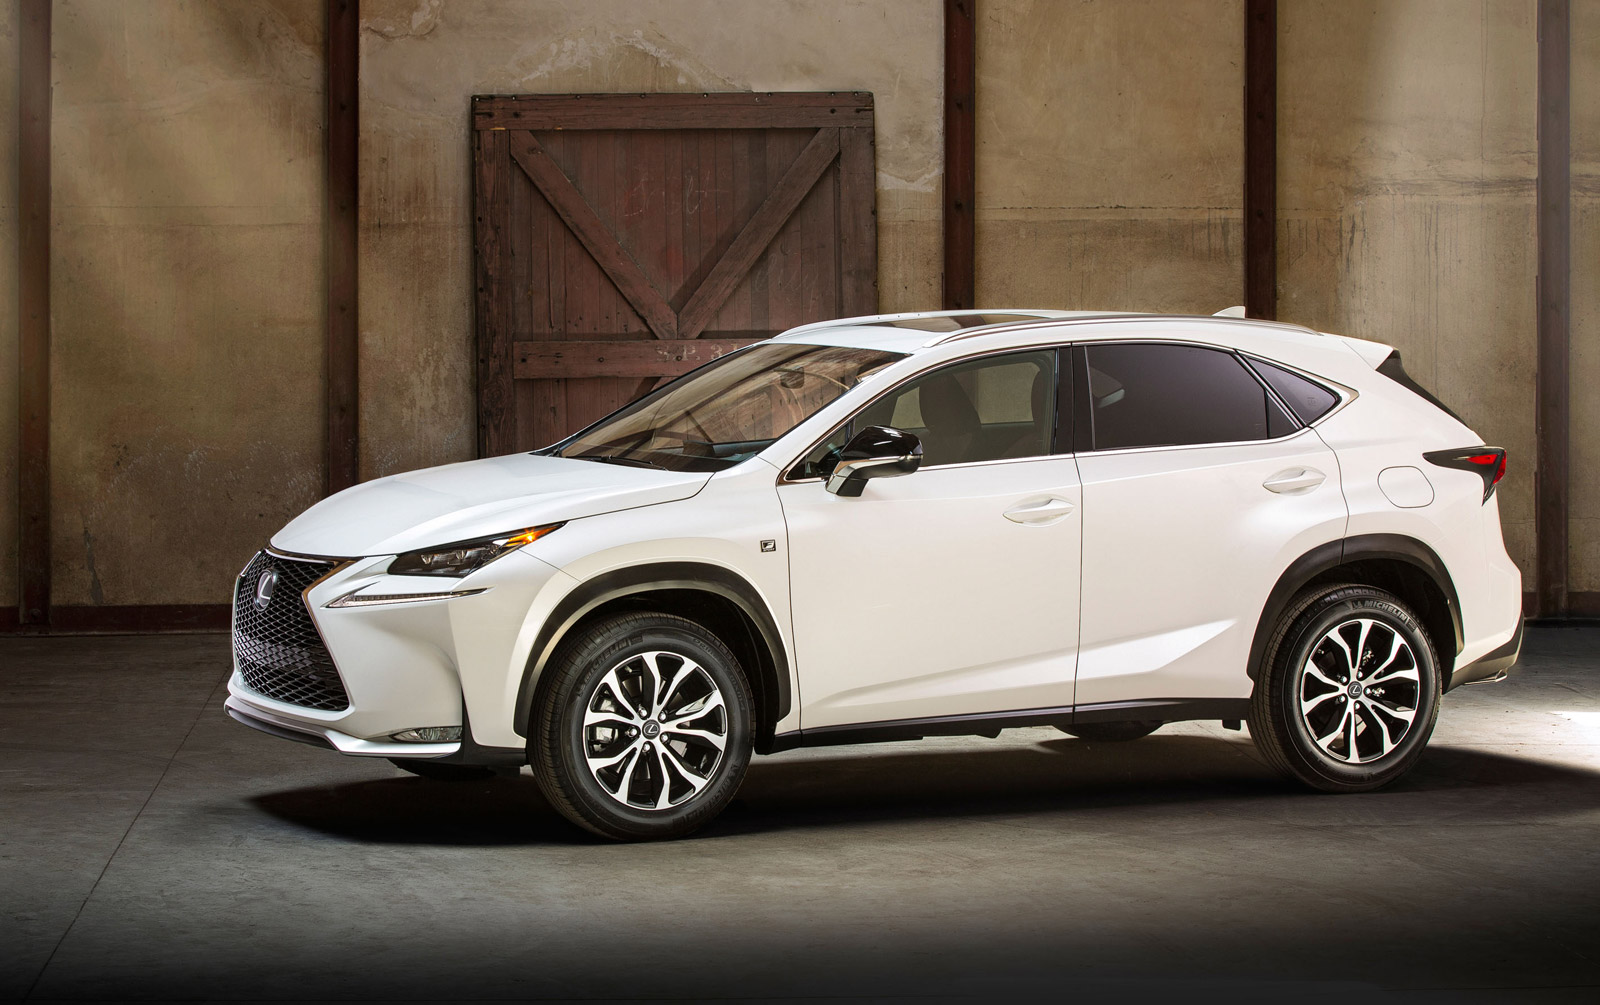 Lexus Nx 200t For Sale >> 2015 Lexus NX compact crossover revealed